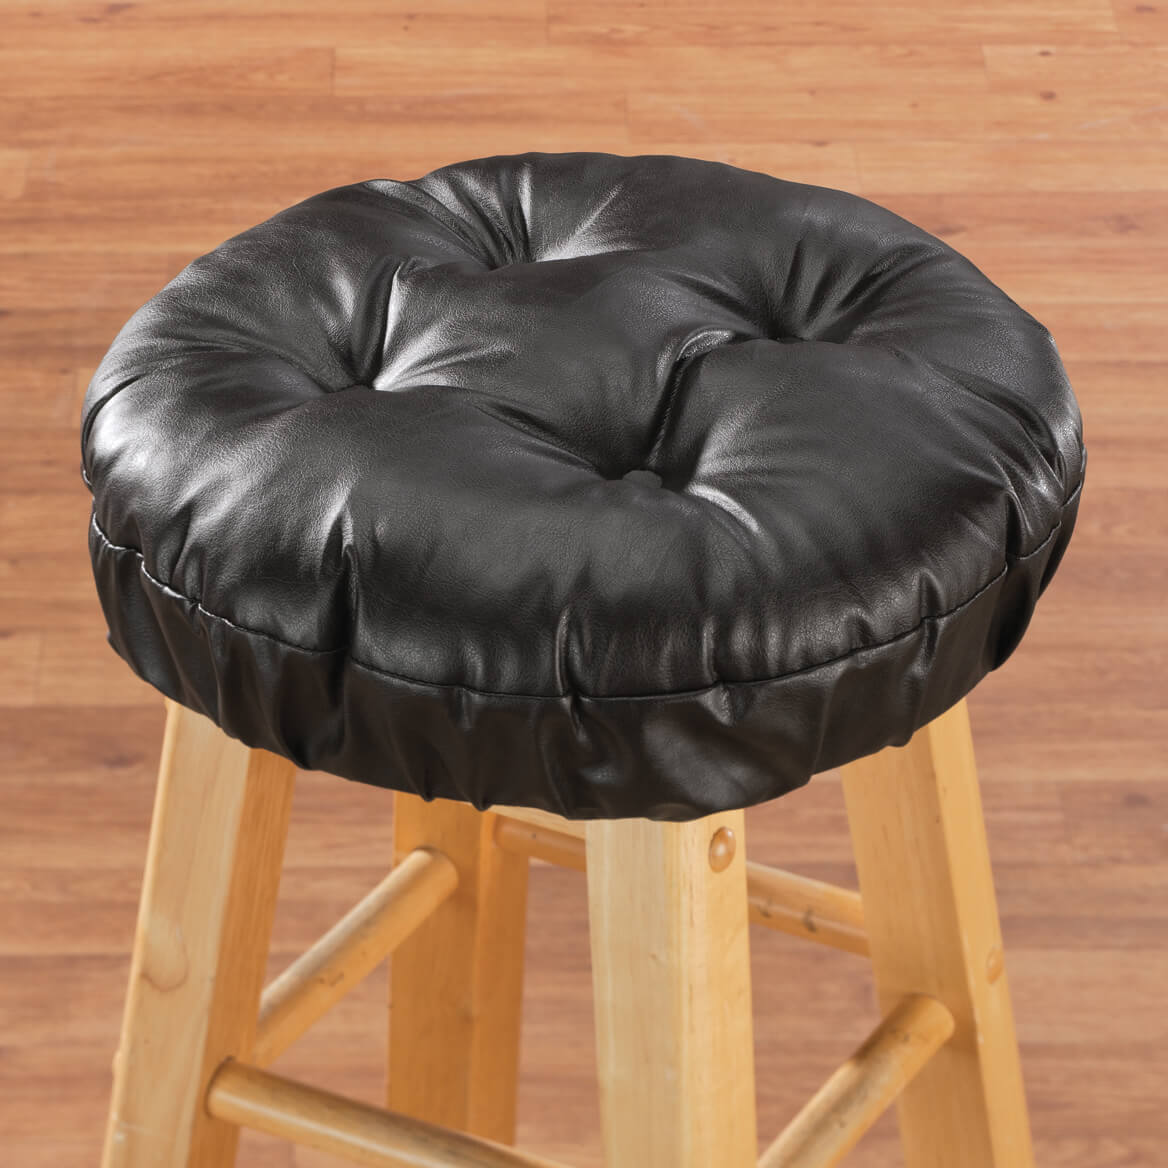 faux leather chair pads design types bar stool cushion walter drake